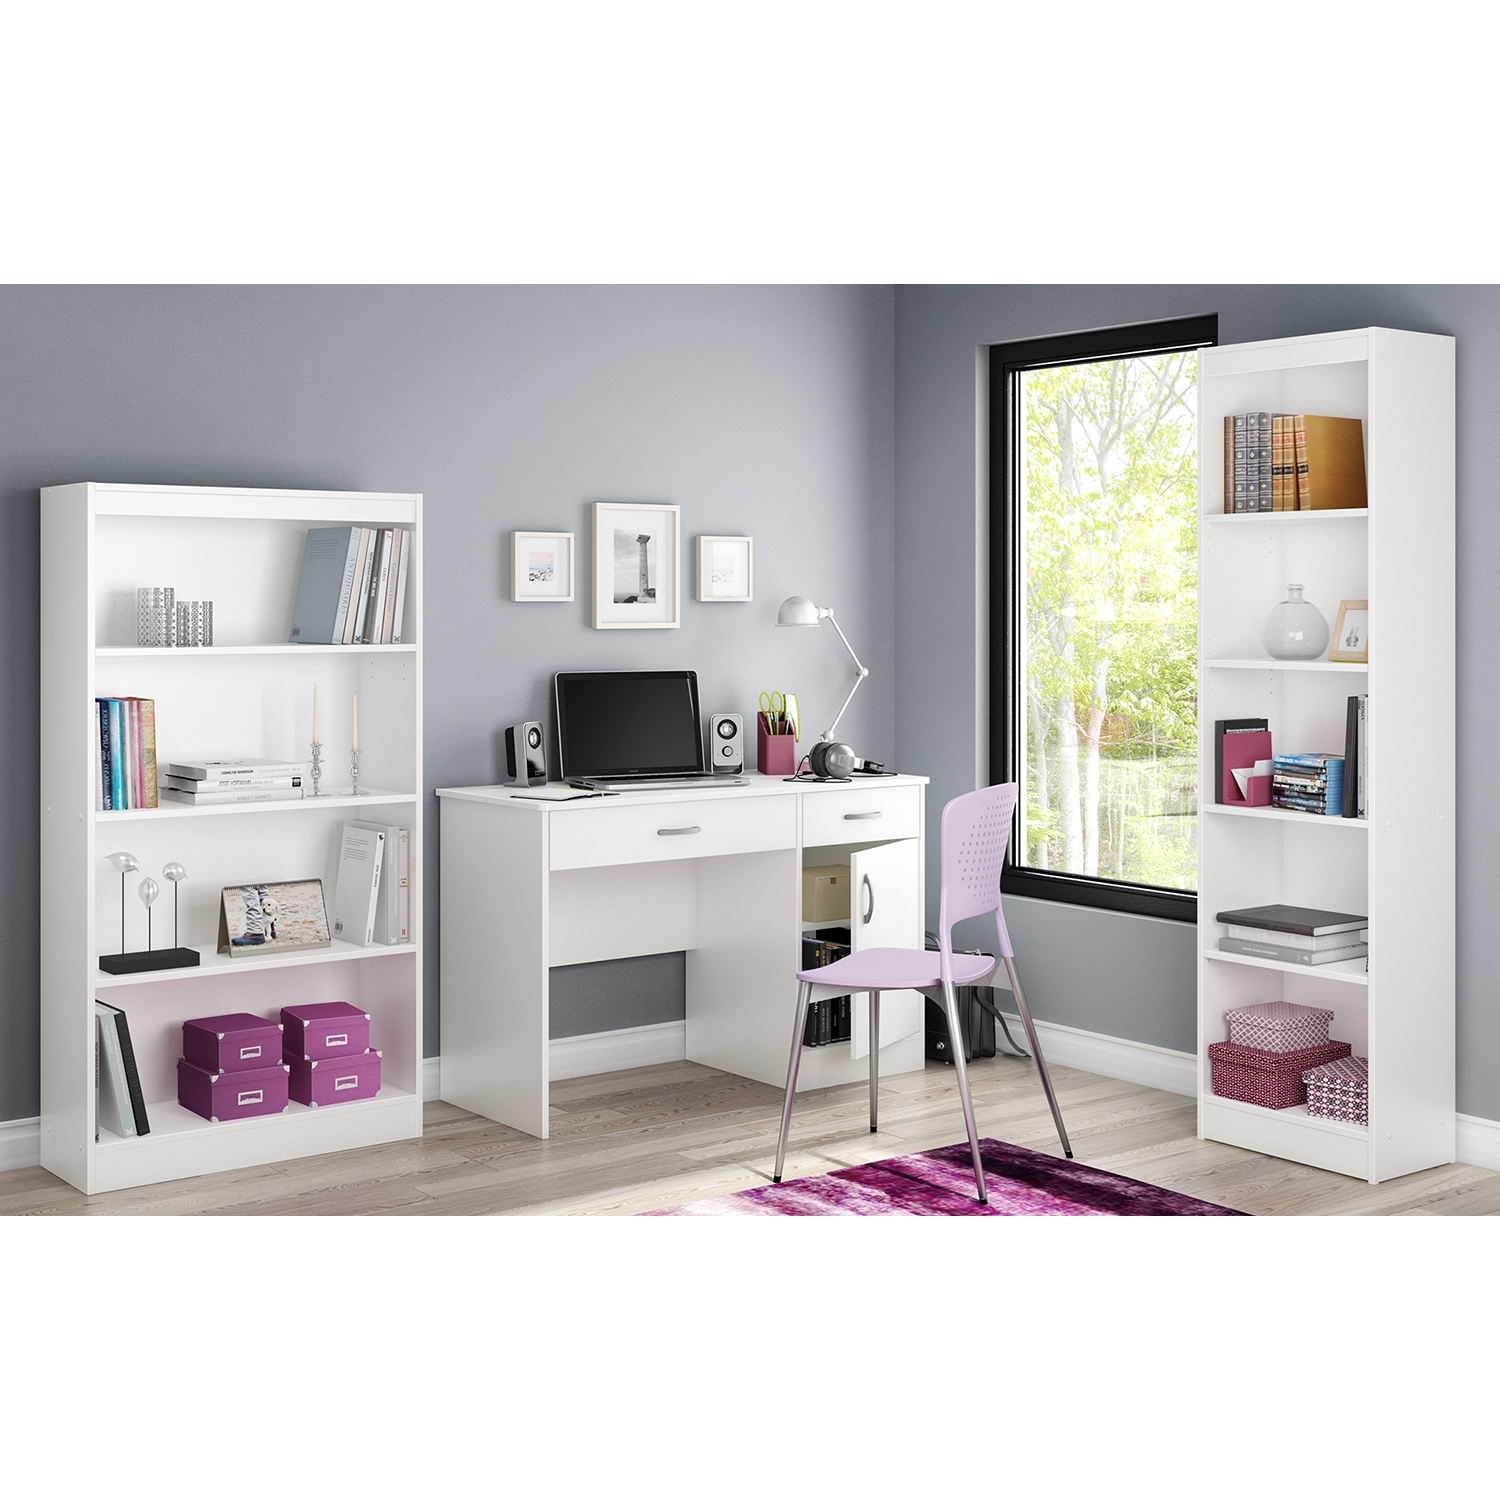 Axess Small Desk - 2 Drawers, 1 Door, Pure White - SS-7250070